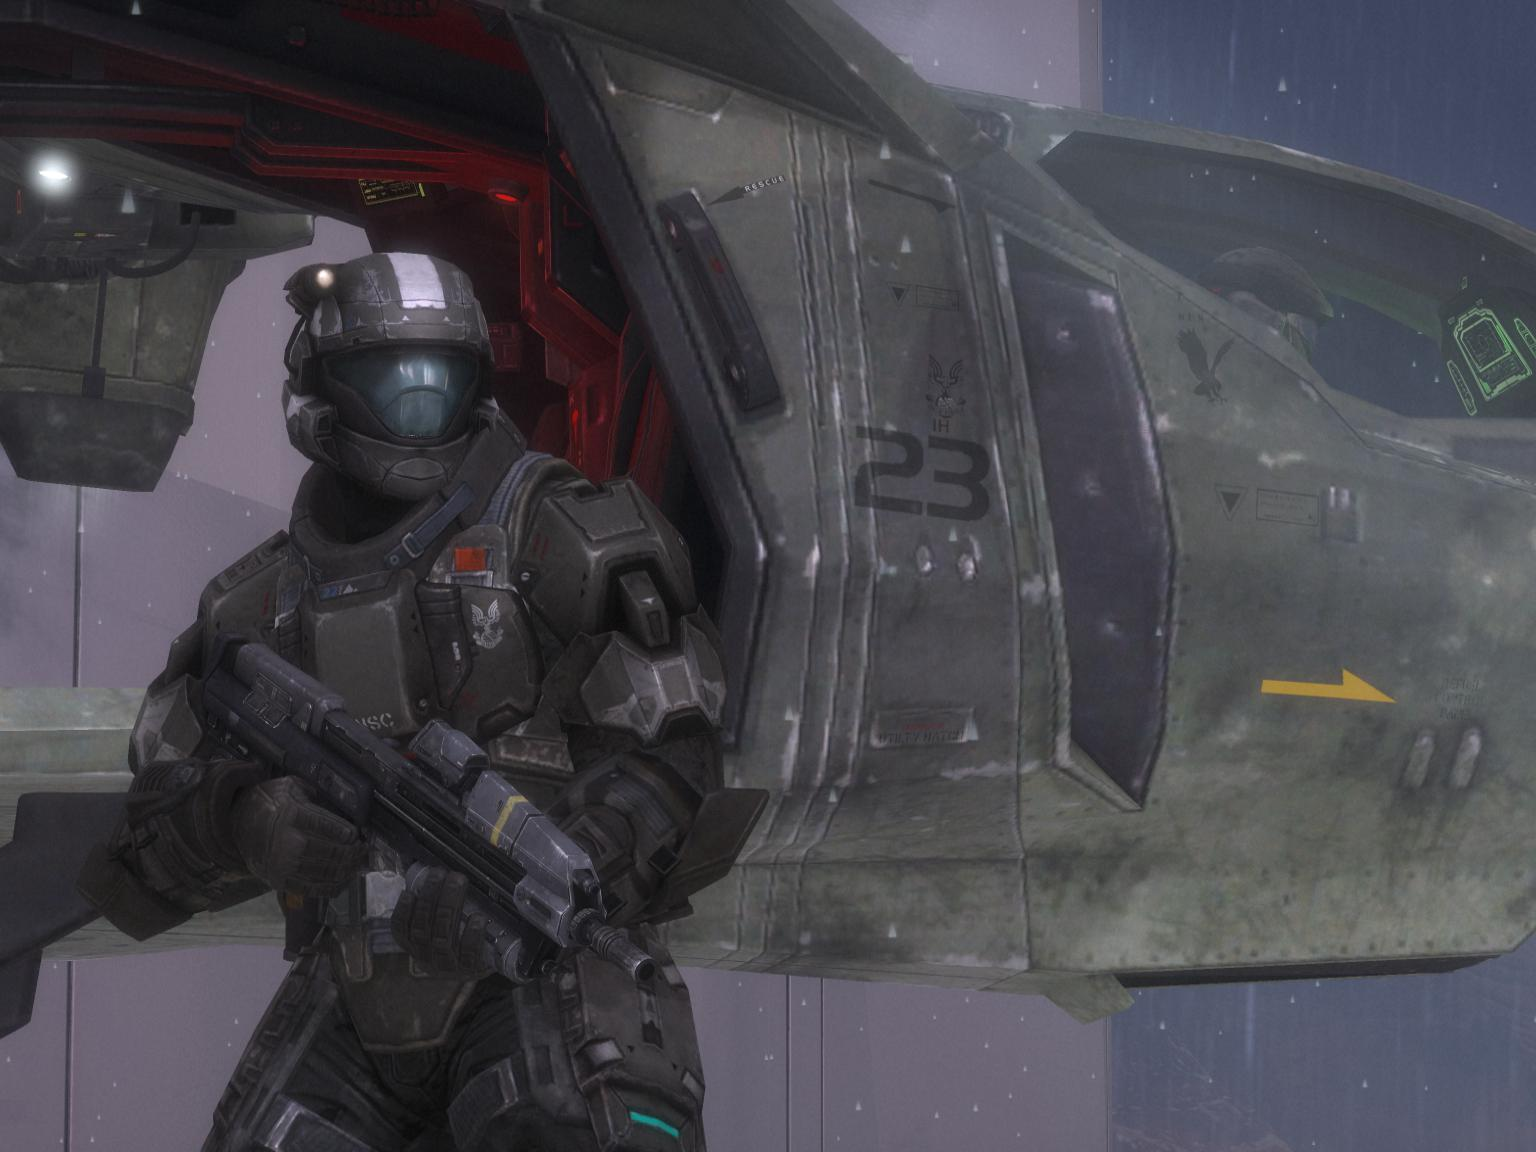 Halo Marine Character Models Halo 5 Guardians Forums